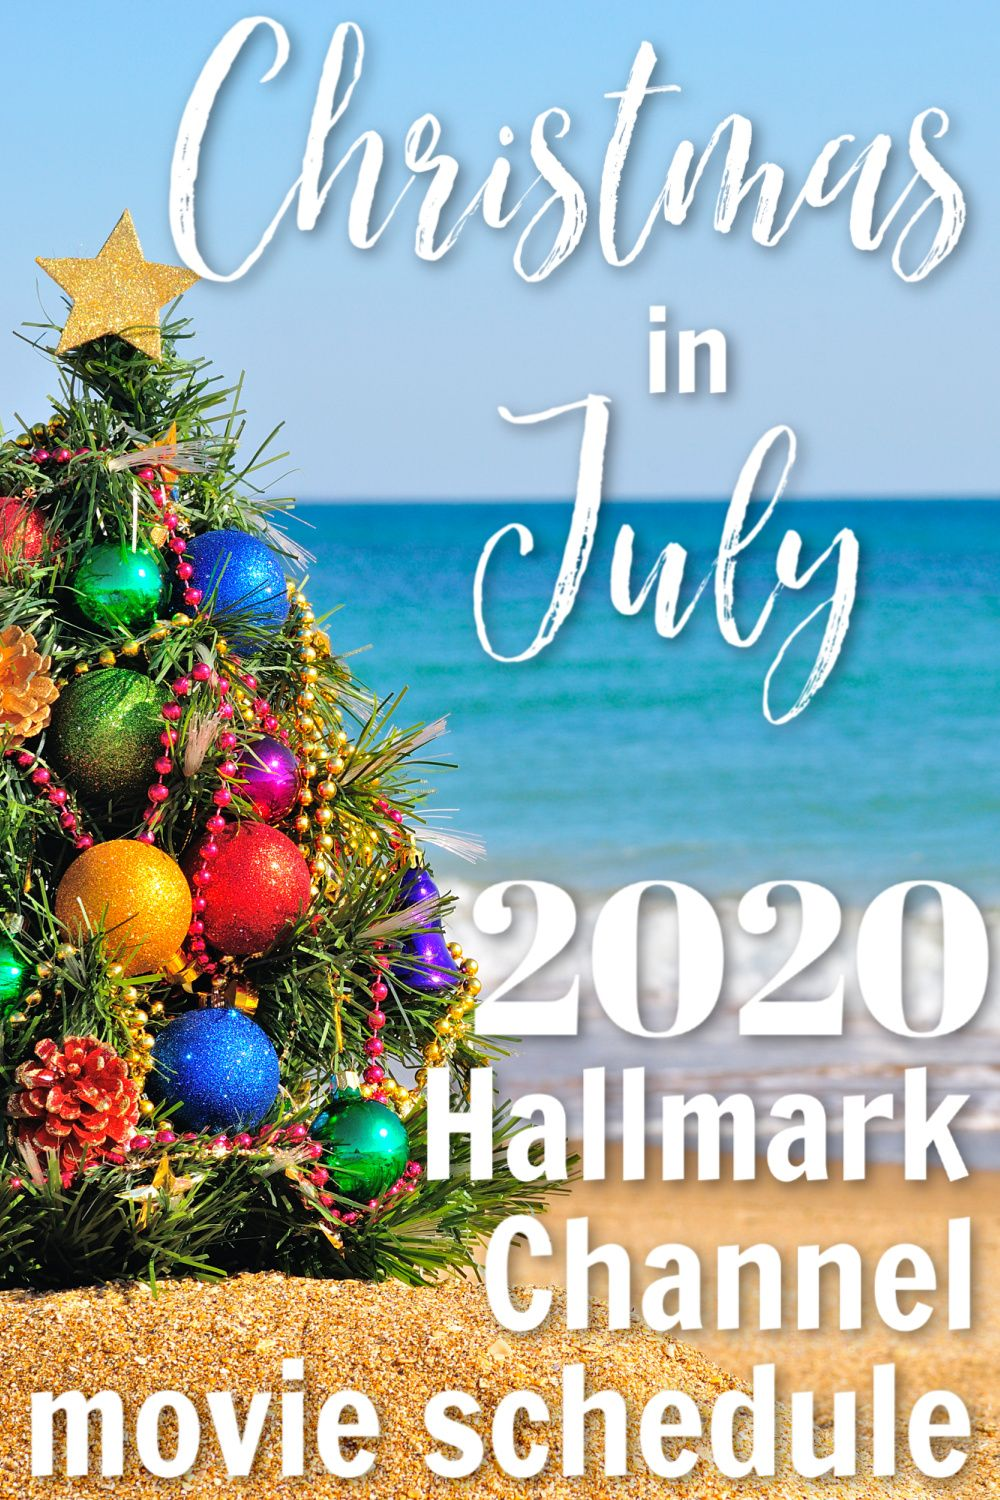 Christmas in July 2020 Hallmark Channel movie schedule